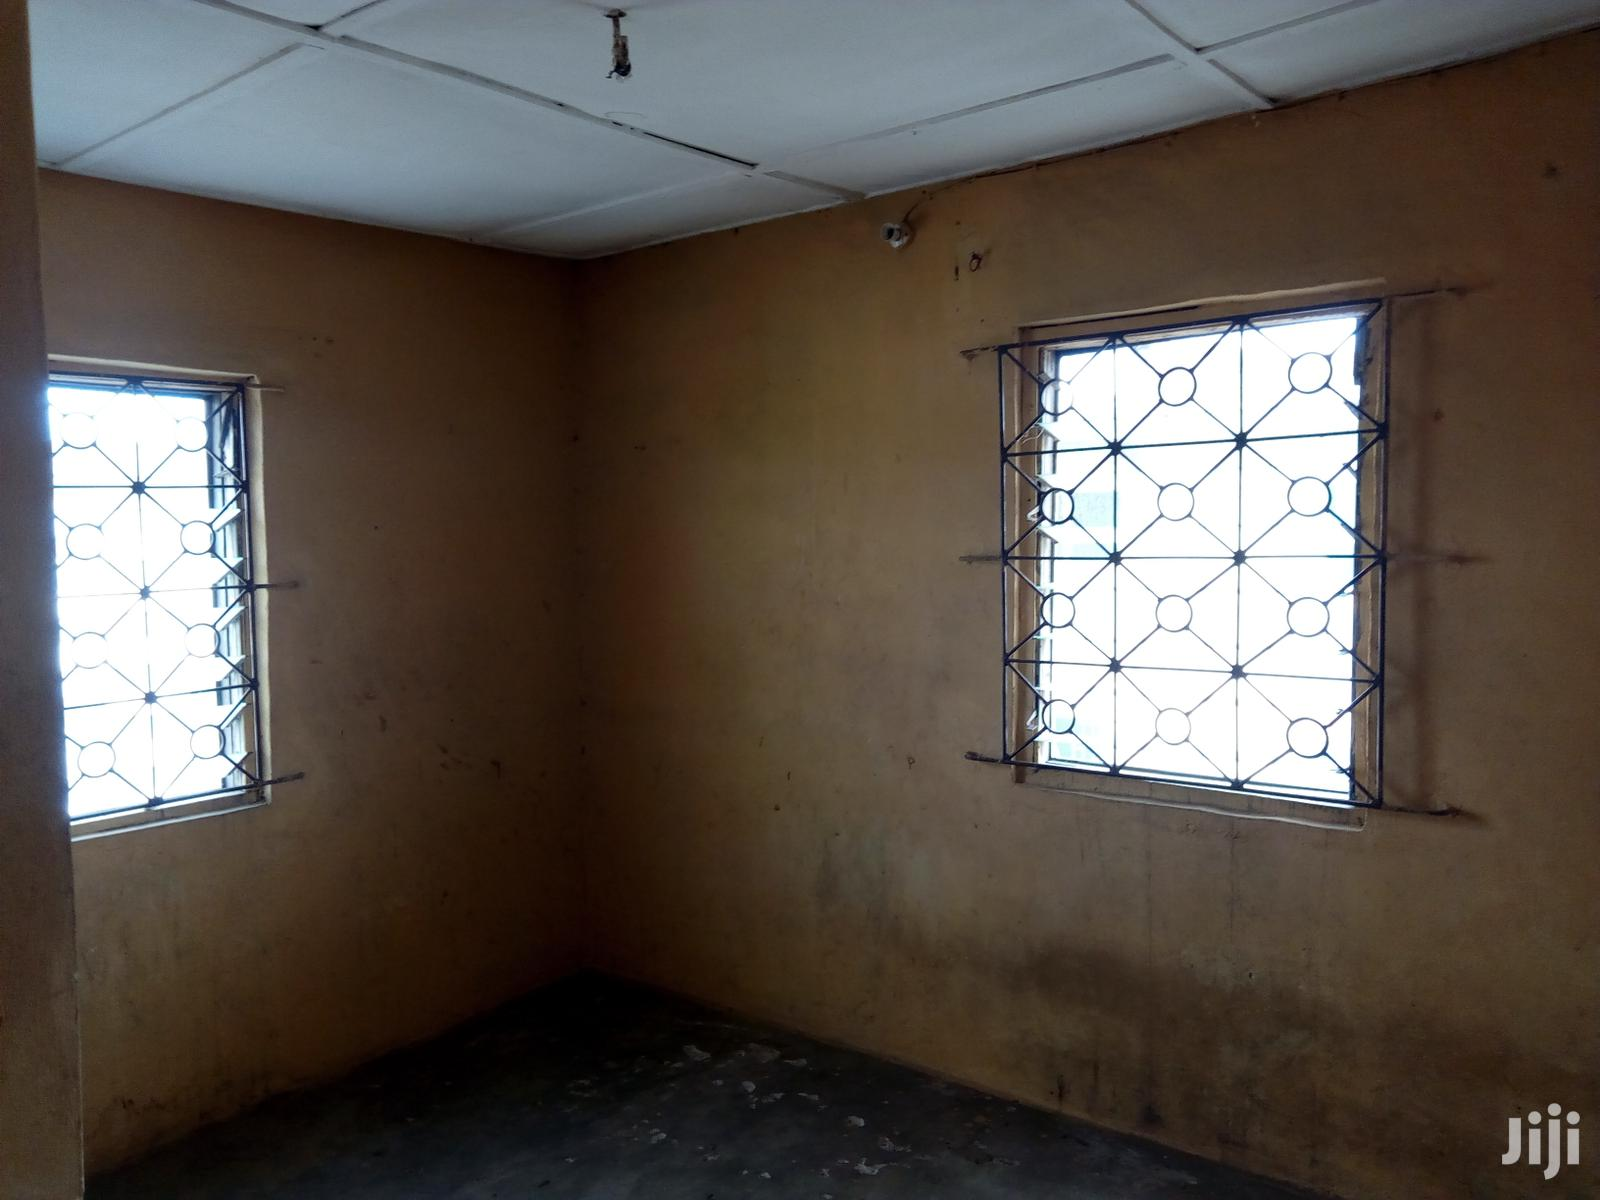 3 Bedroom Flat For Sale | Houses & Apartments For Rent for sale in Ipaja, Lagos State, Nigeria